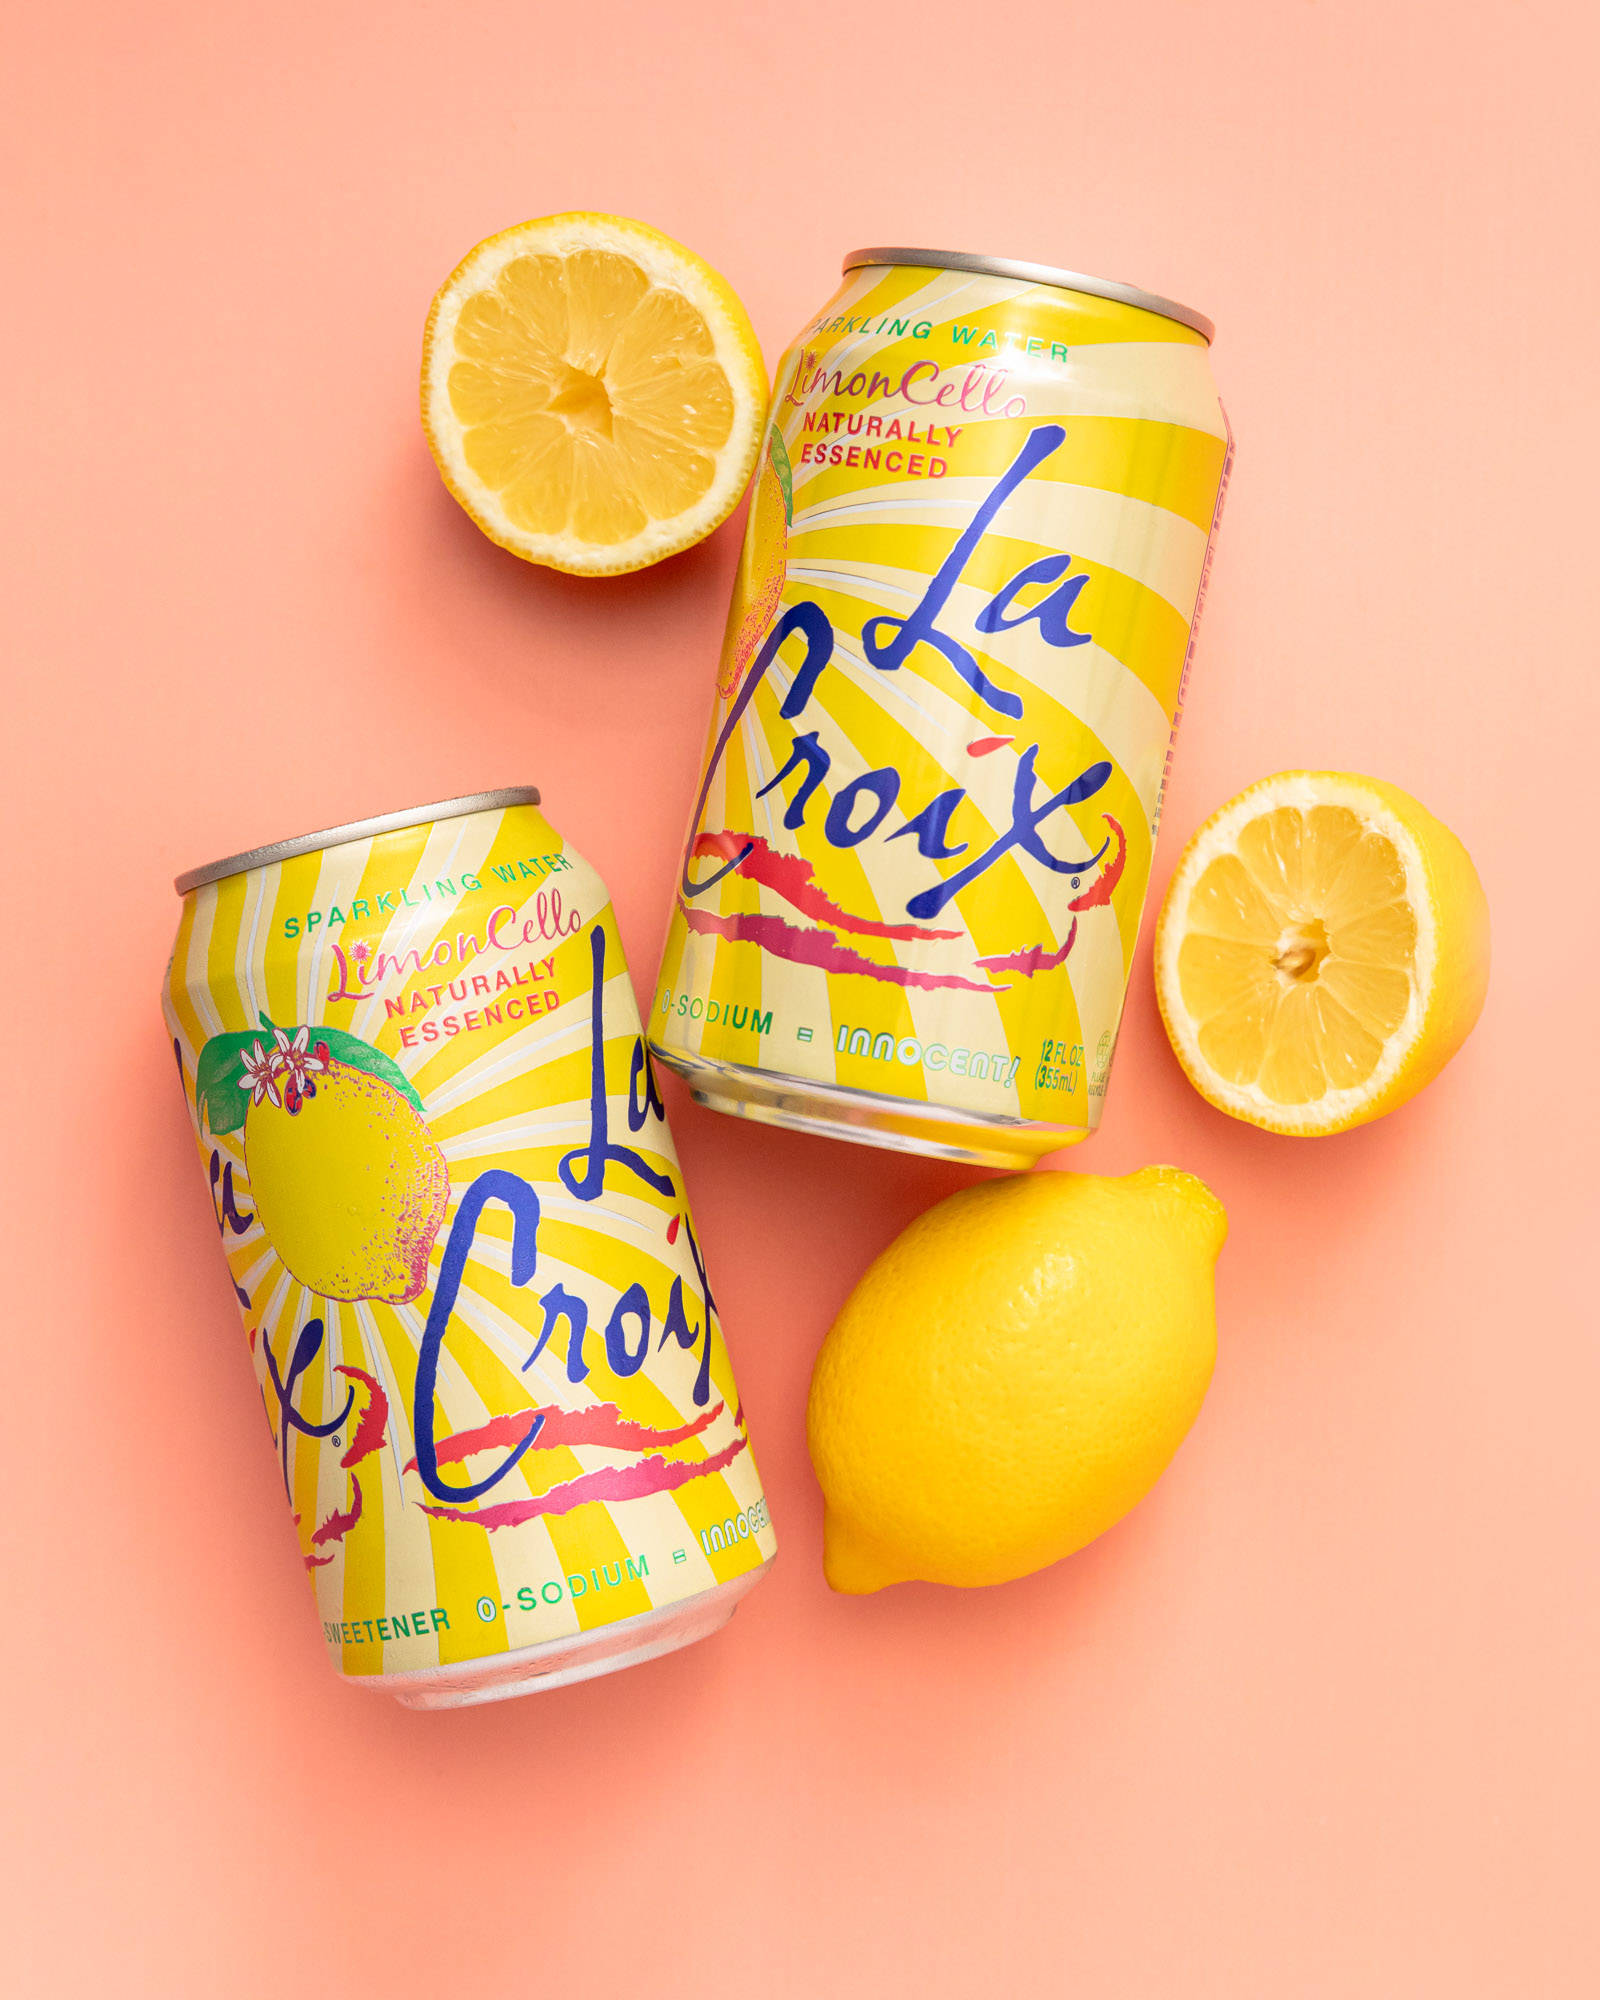 limoncello La Croix cans laying with lemons on a coral background, Studio K10